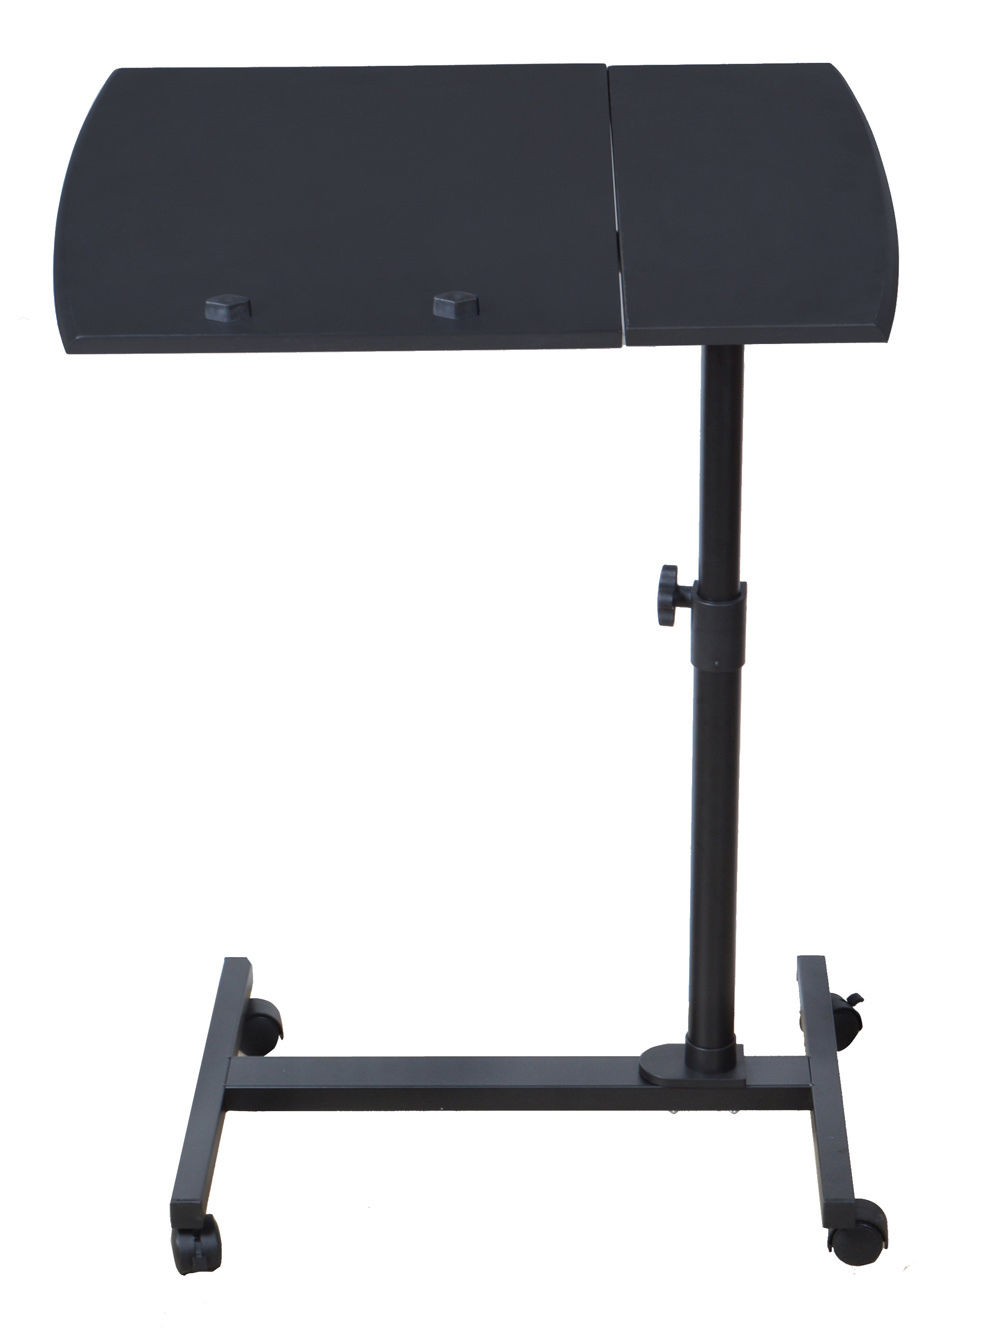 laptop desk angle height adjustable rolling notebook sofa bed tray table stand ebay. Black Bedroom Furniture Sets. Home Design Ideas